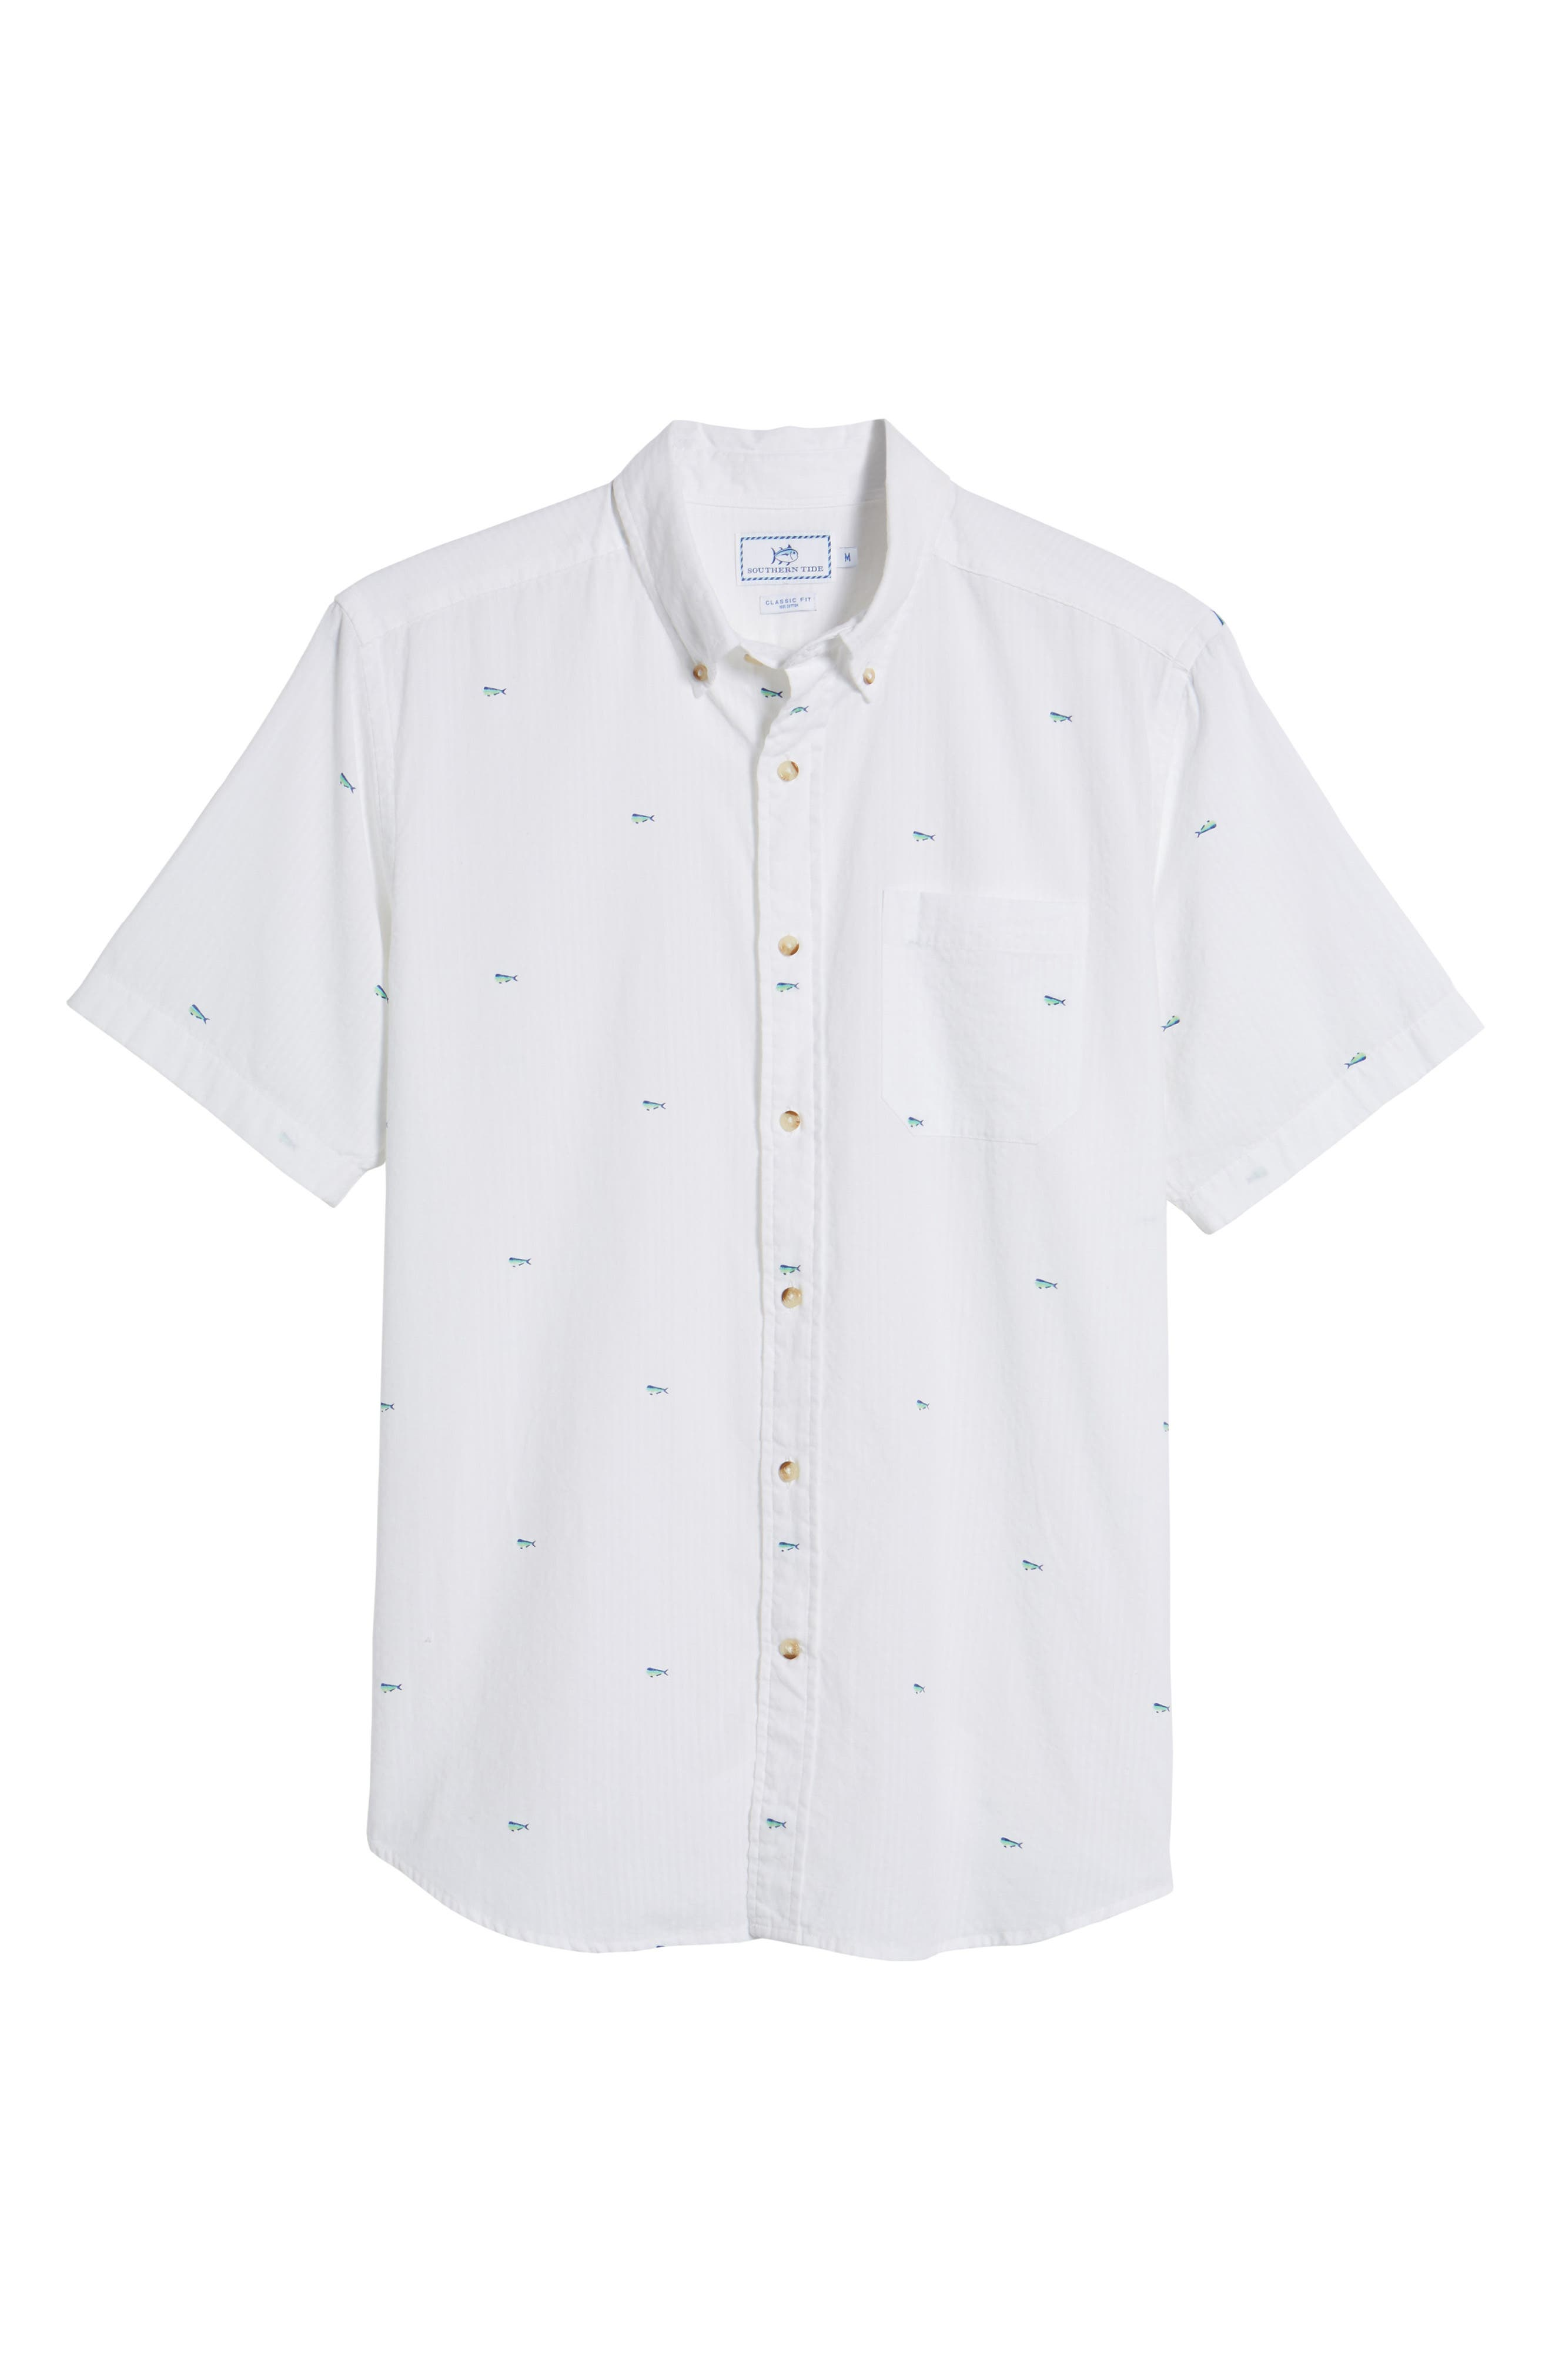 Catch of the Day Sport Shirt,                             Alternate thumbnail 6, color,                             107